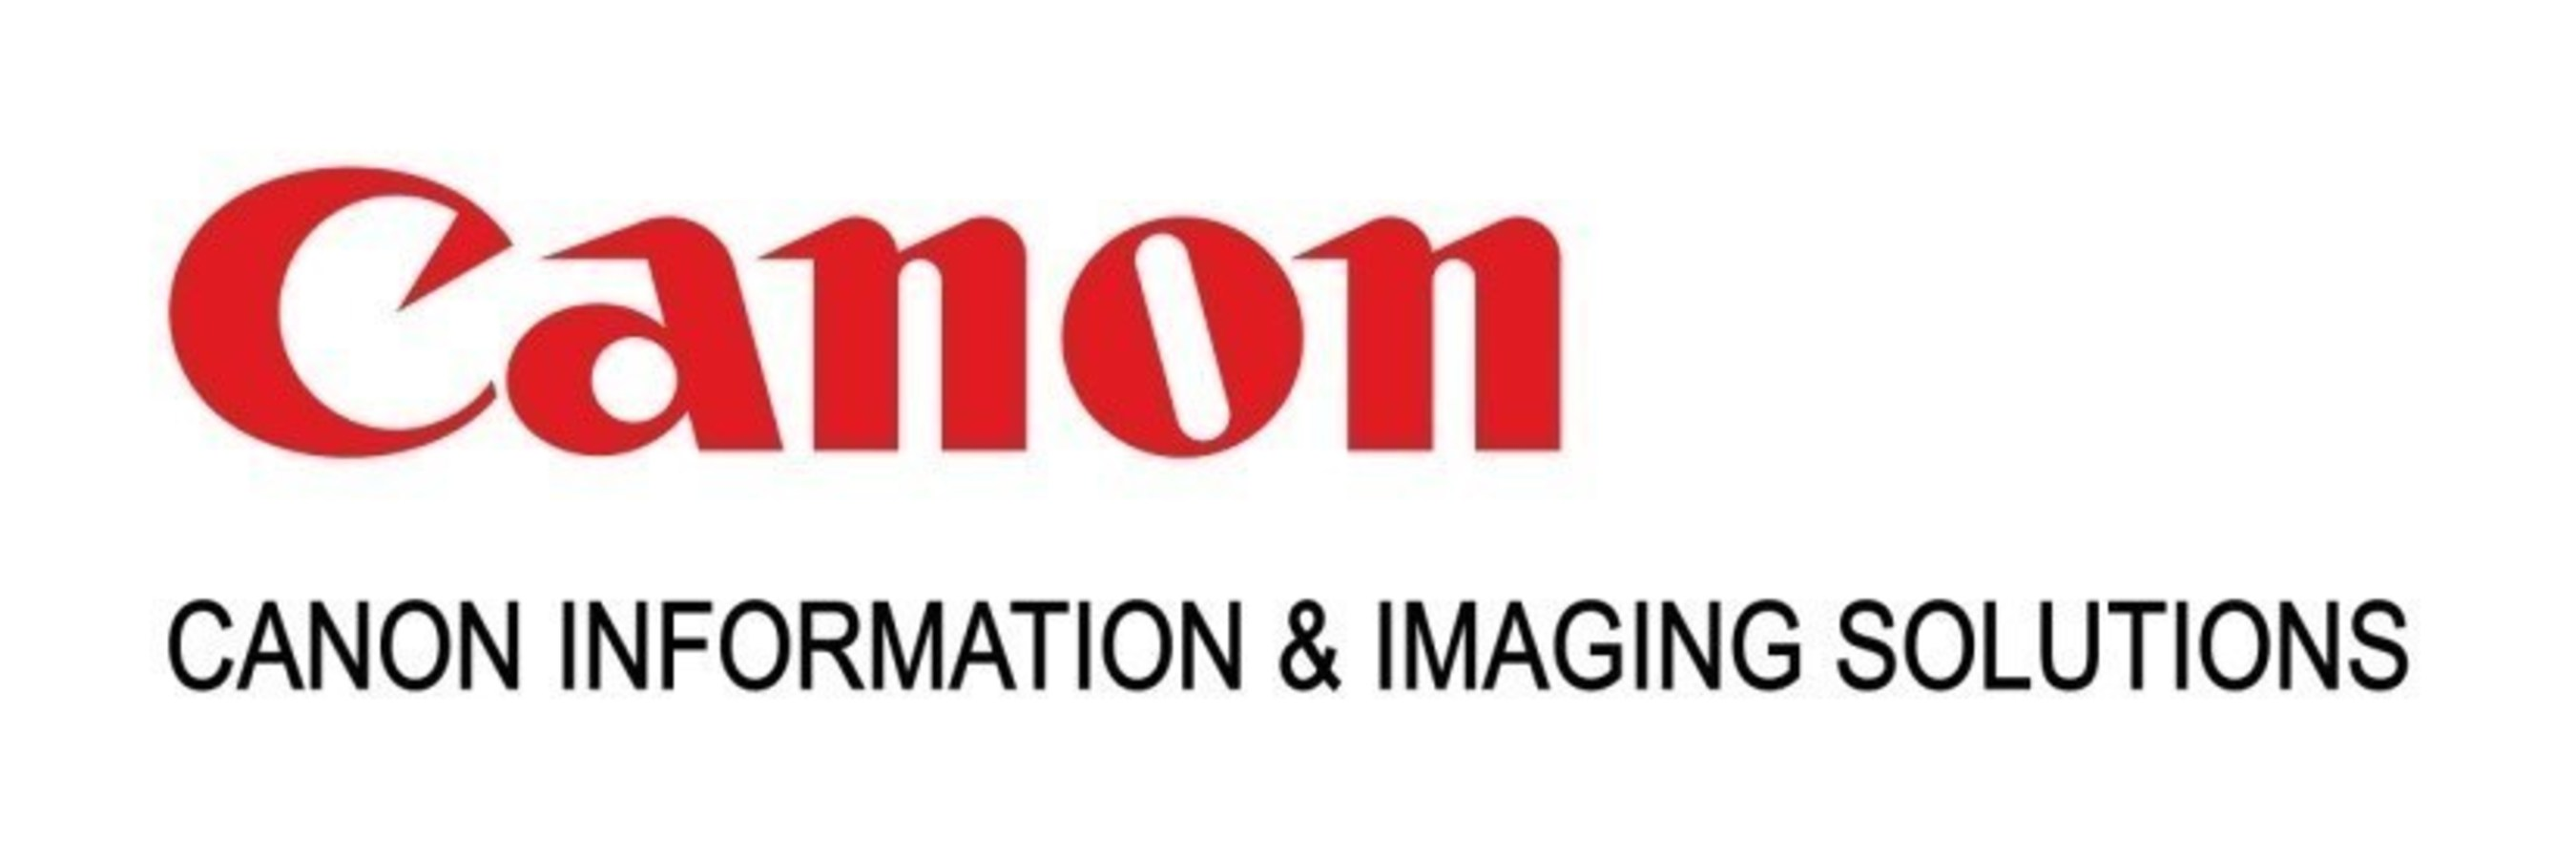 Image result for Canon Information and Imaging Solutions, Inc.